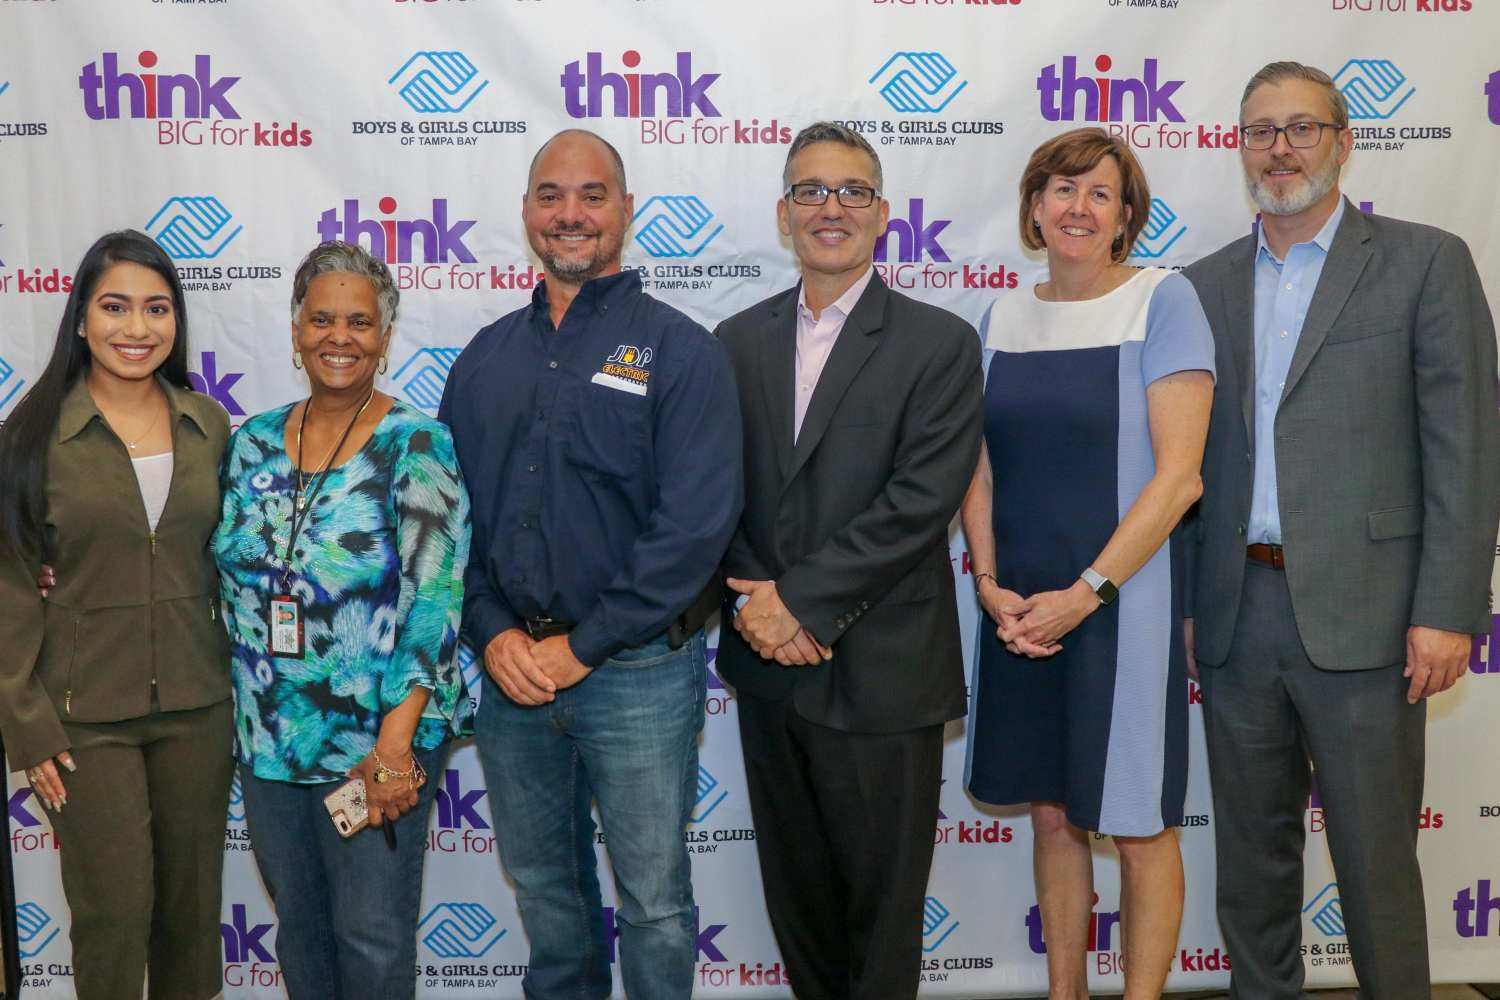 Think big for kids team